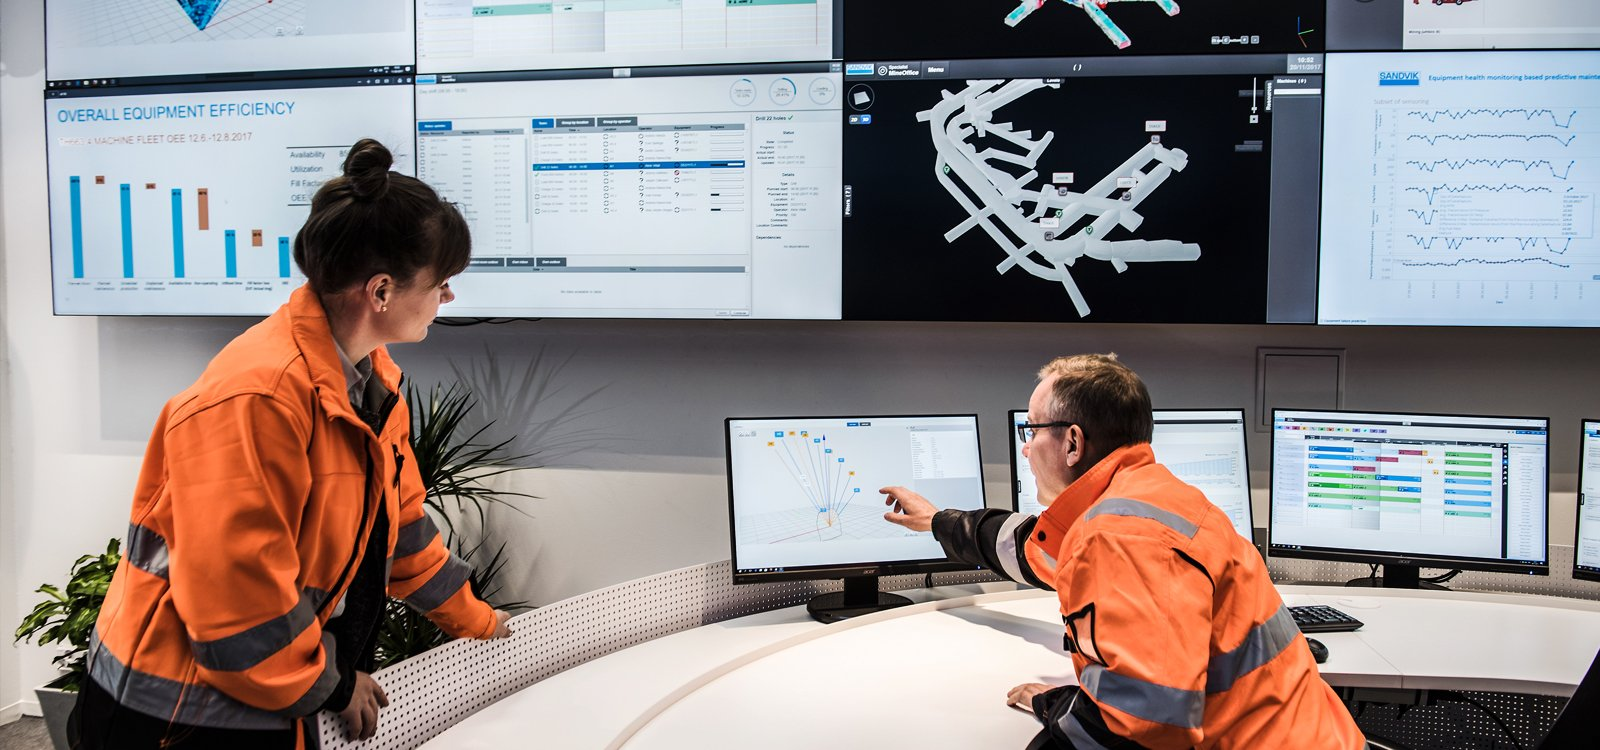 <p>OptiMine Analytics builds on the IBM Watson artificial intelligence platform and merges its analytic and predictive modelling capabilities with Sandvik's extensive knowledge of mining operations and equipment.</p>